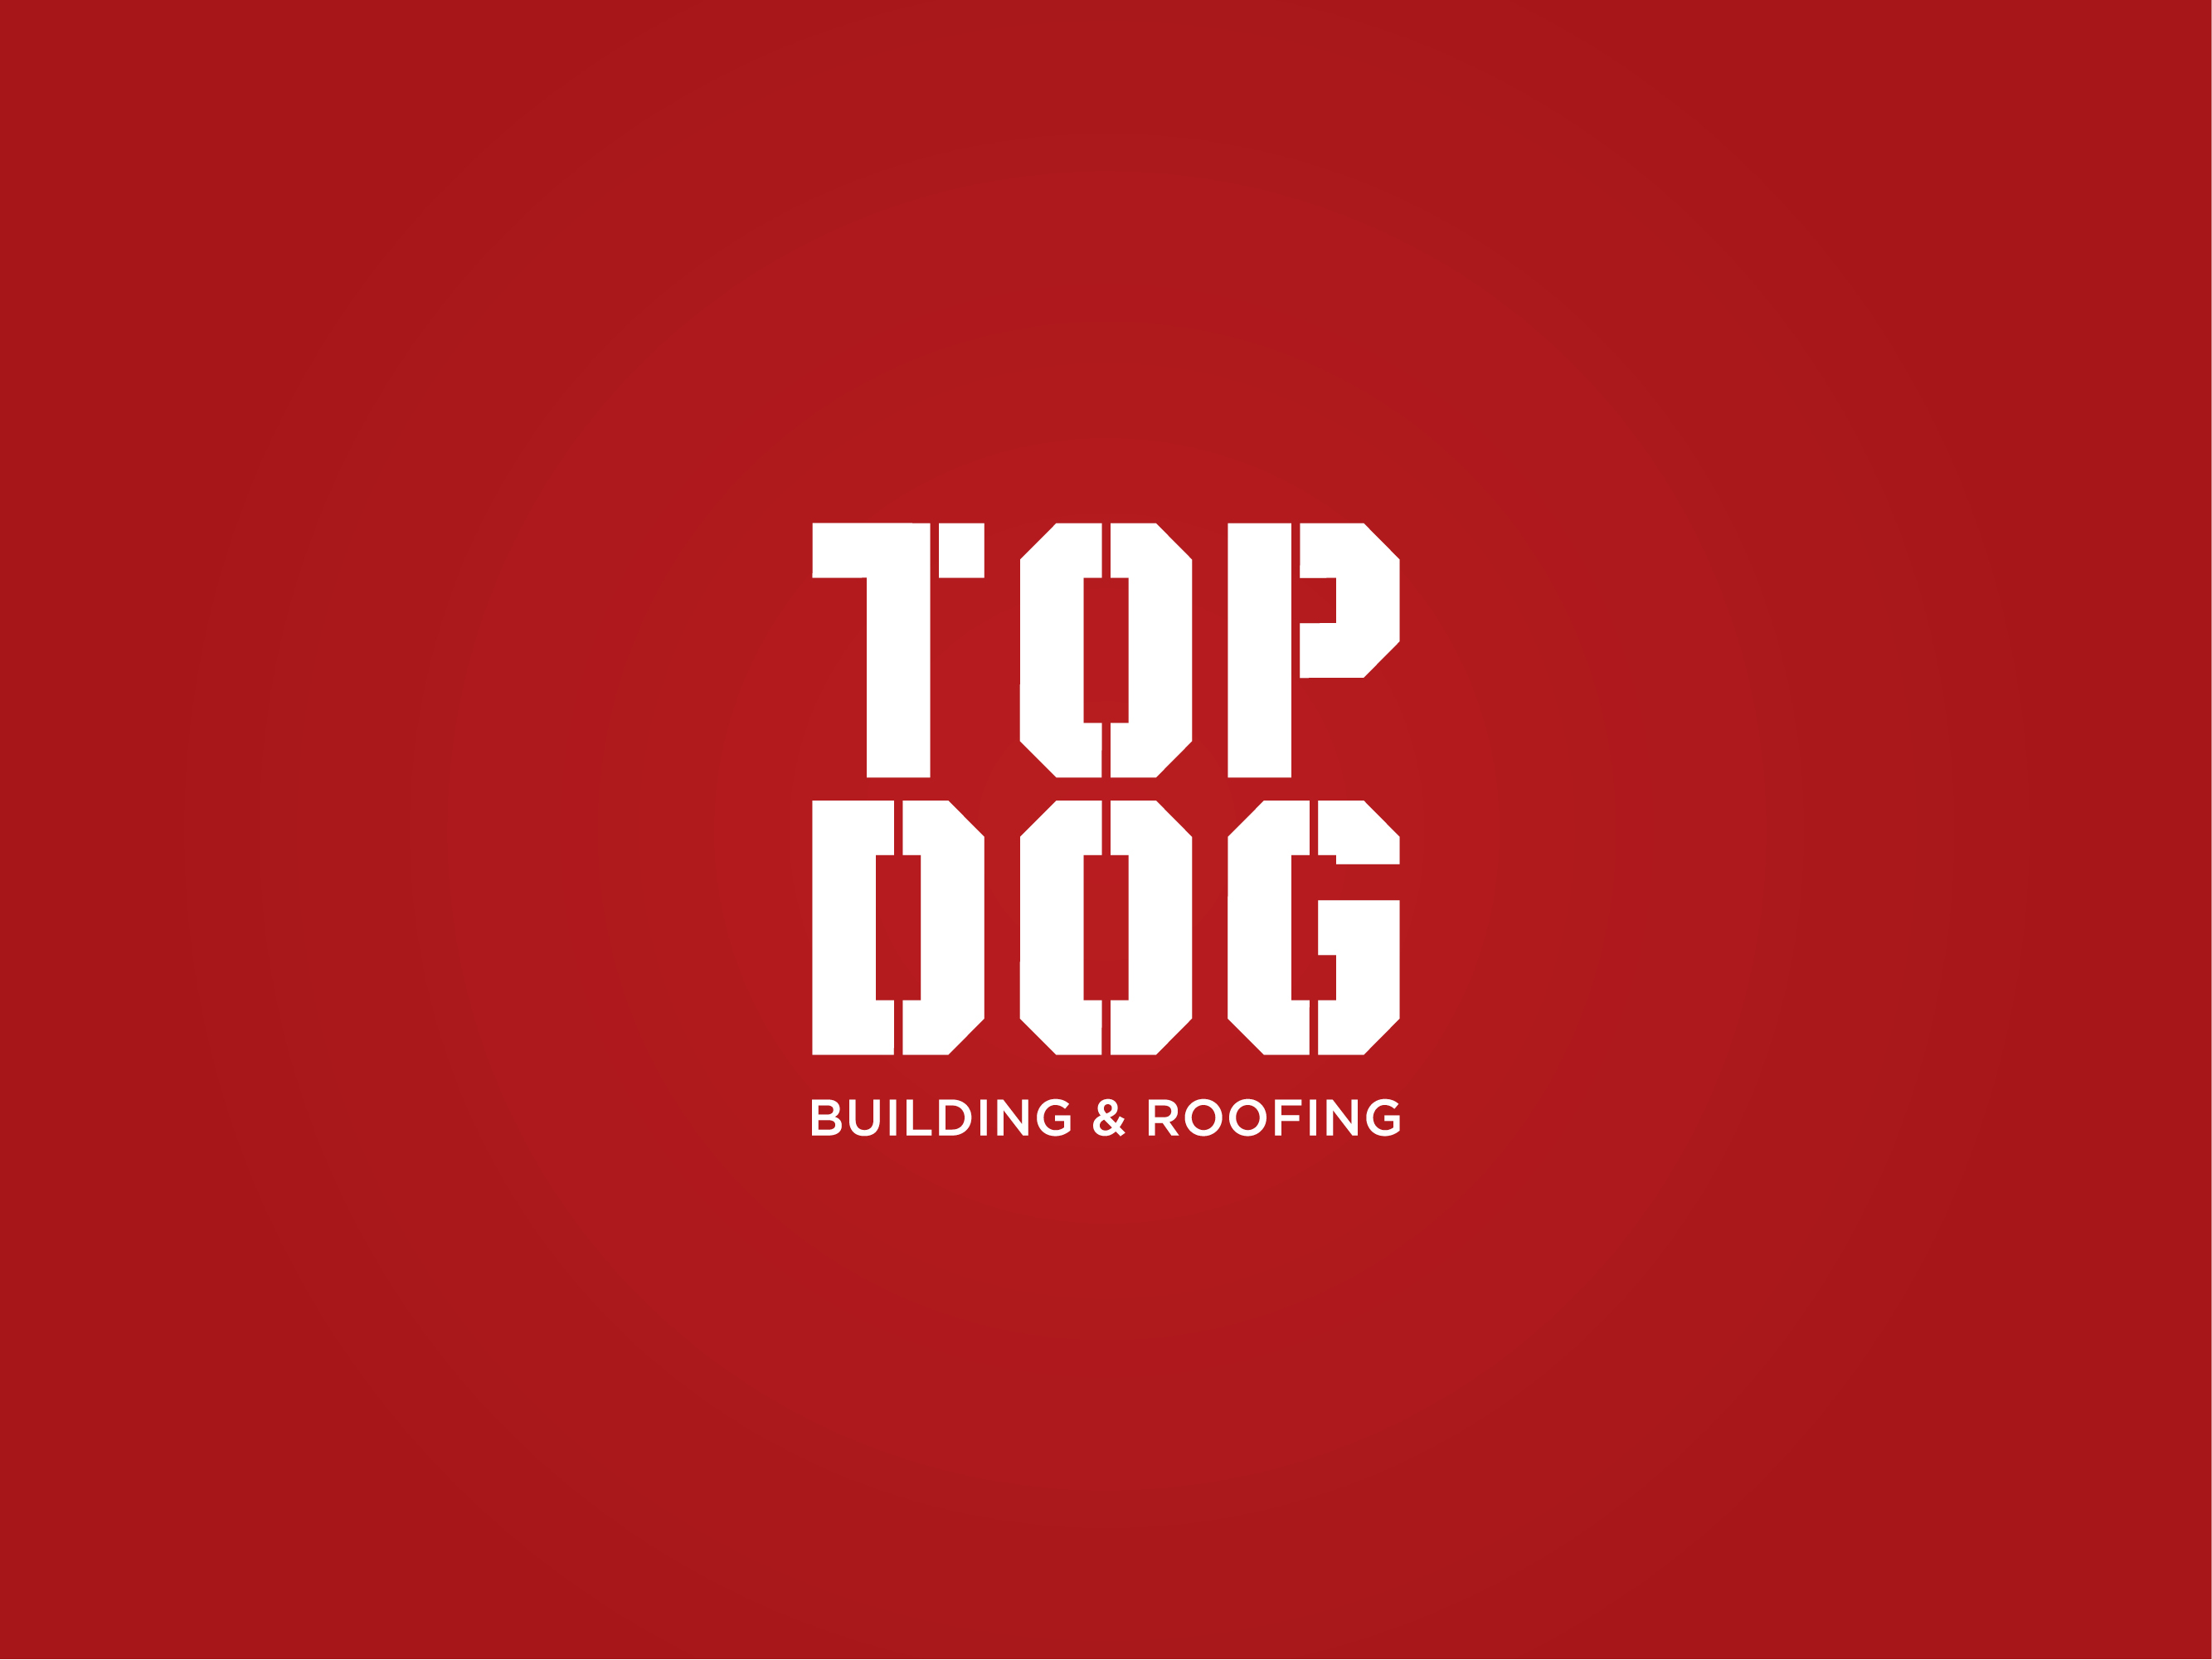 Building and roofing Cardiff logo and branding design